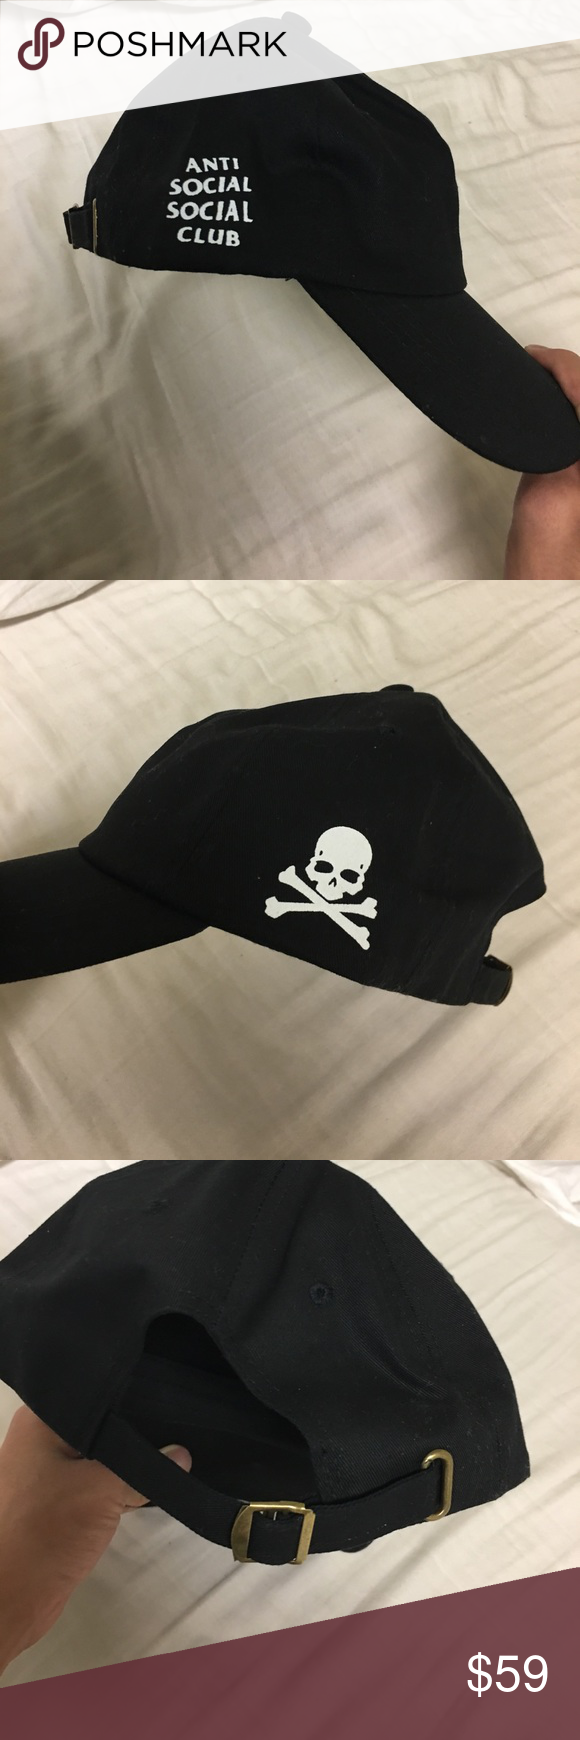 1cdc7179ce71 ASSC x MASTERMIND Dad Hat Brand new. Never worn. No tags. Feel free